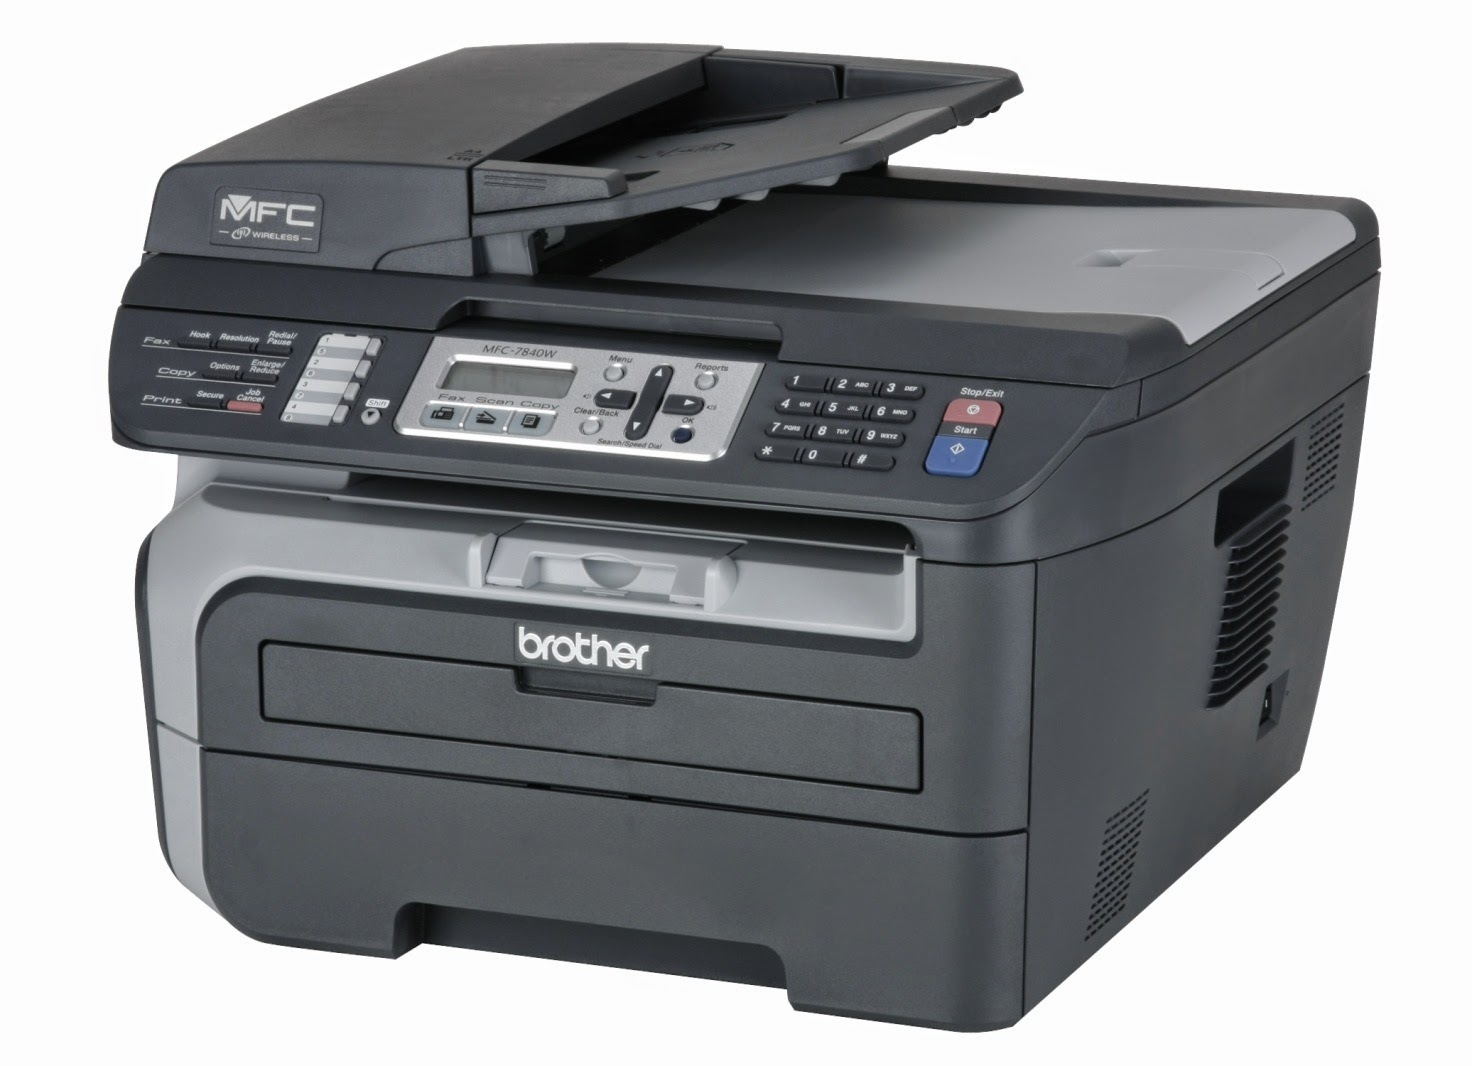 Printer Brother MFC-7840W